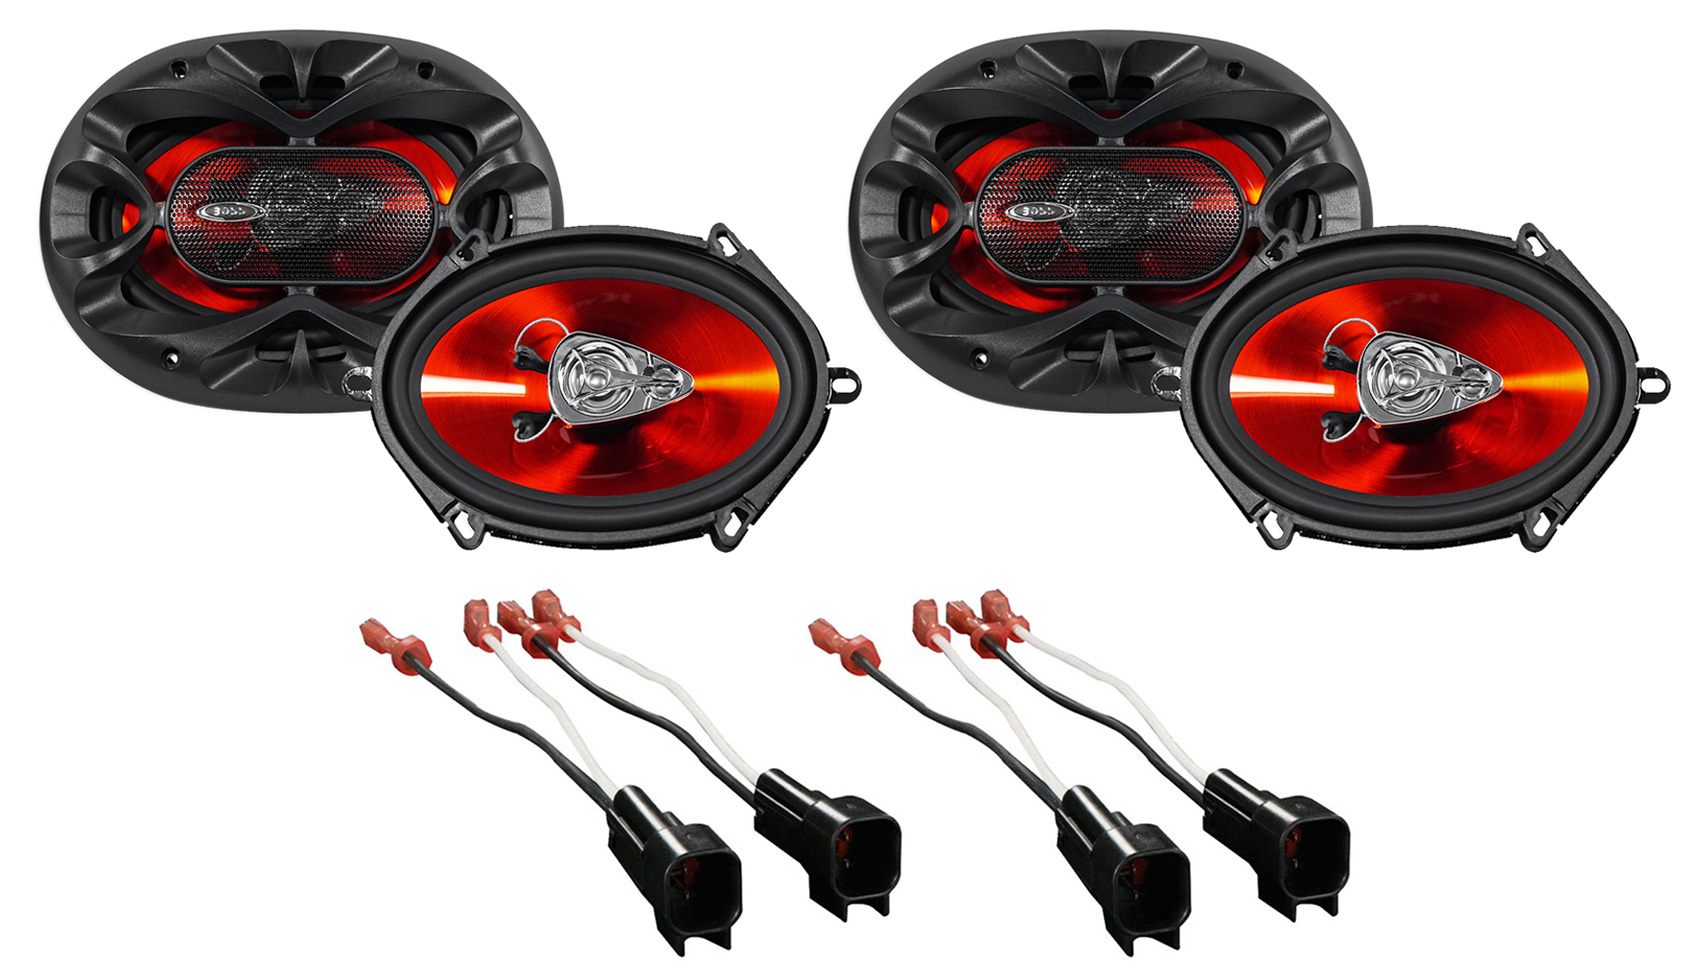 hight resolution of boss 5x7 front rear factory speaker replacement kit for 2007 ford mustang walmart com